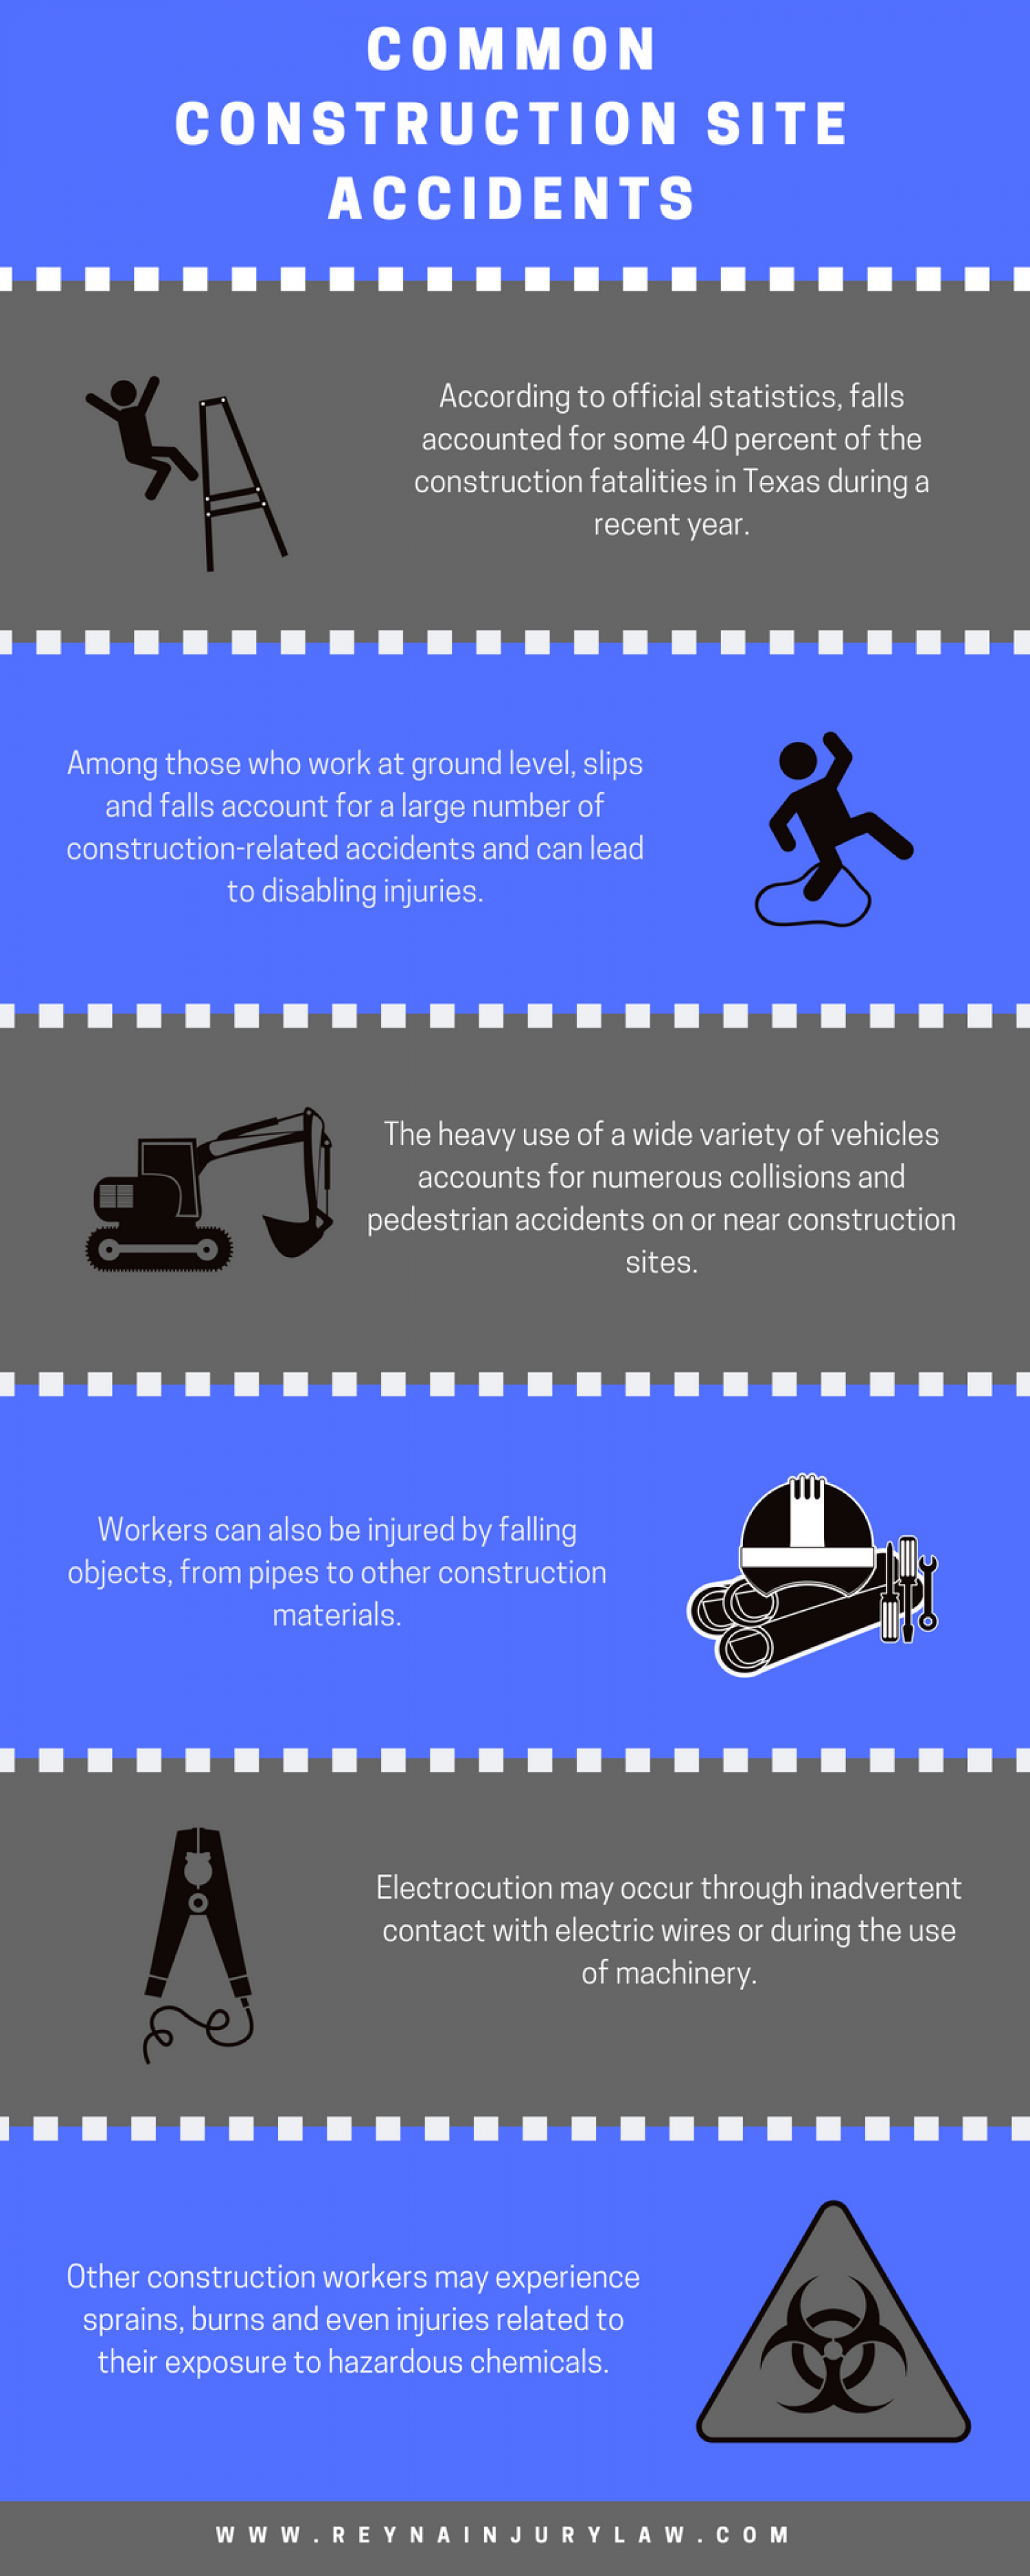 Common Construction Site Accidents Infographic